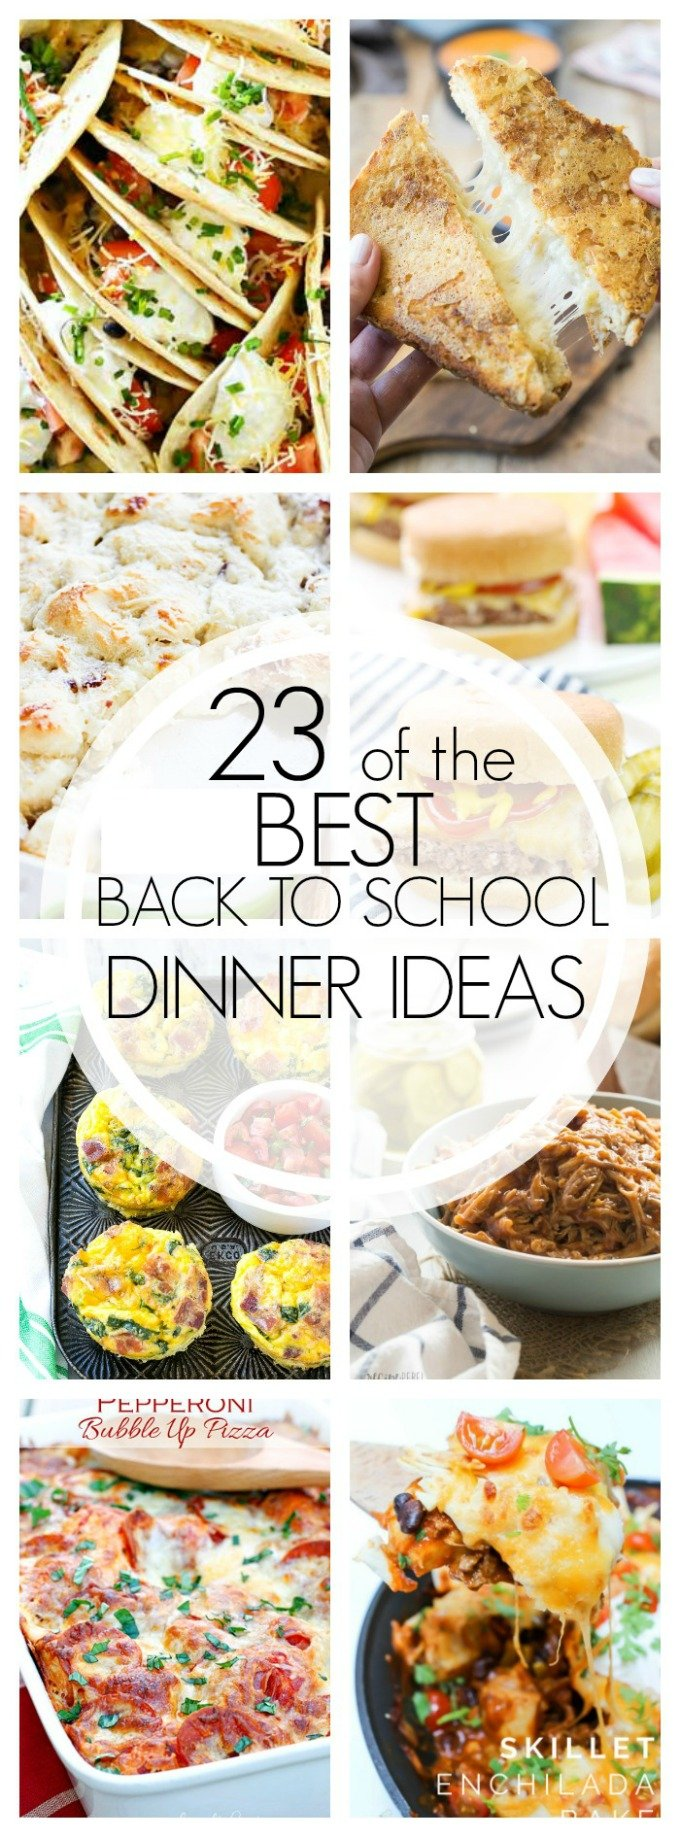 23 of the BEST Back to School Dinner Ideas • Domestic Superhero